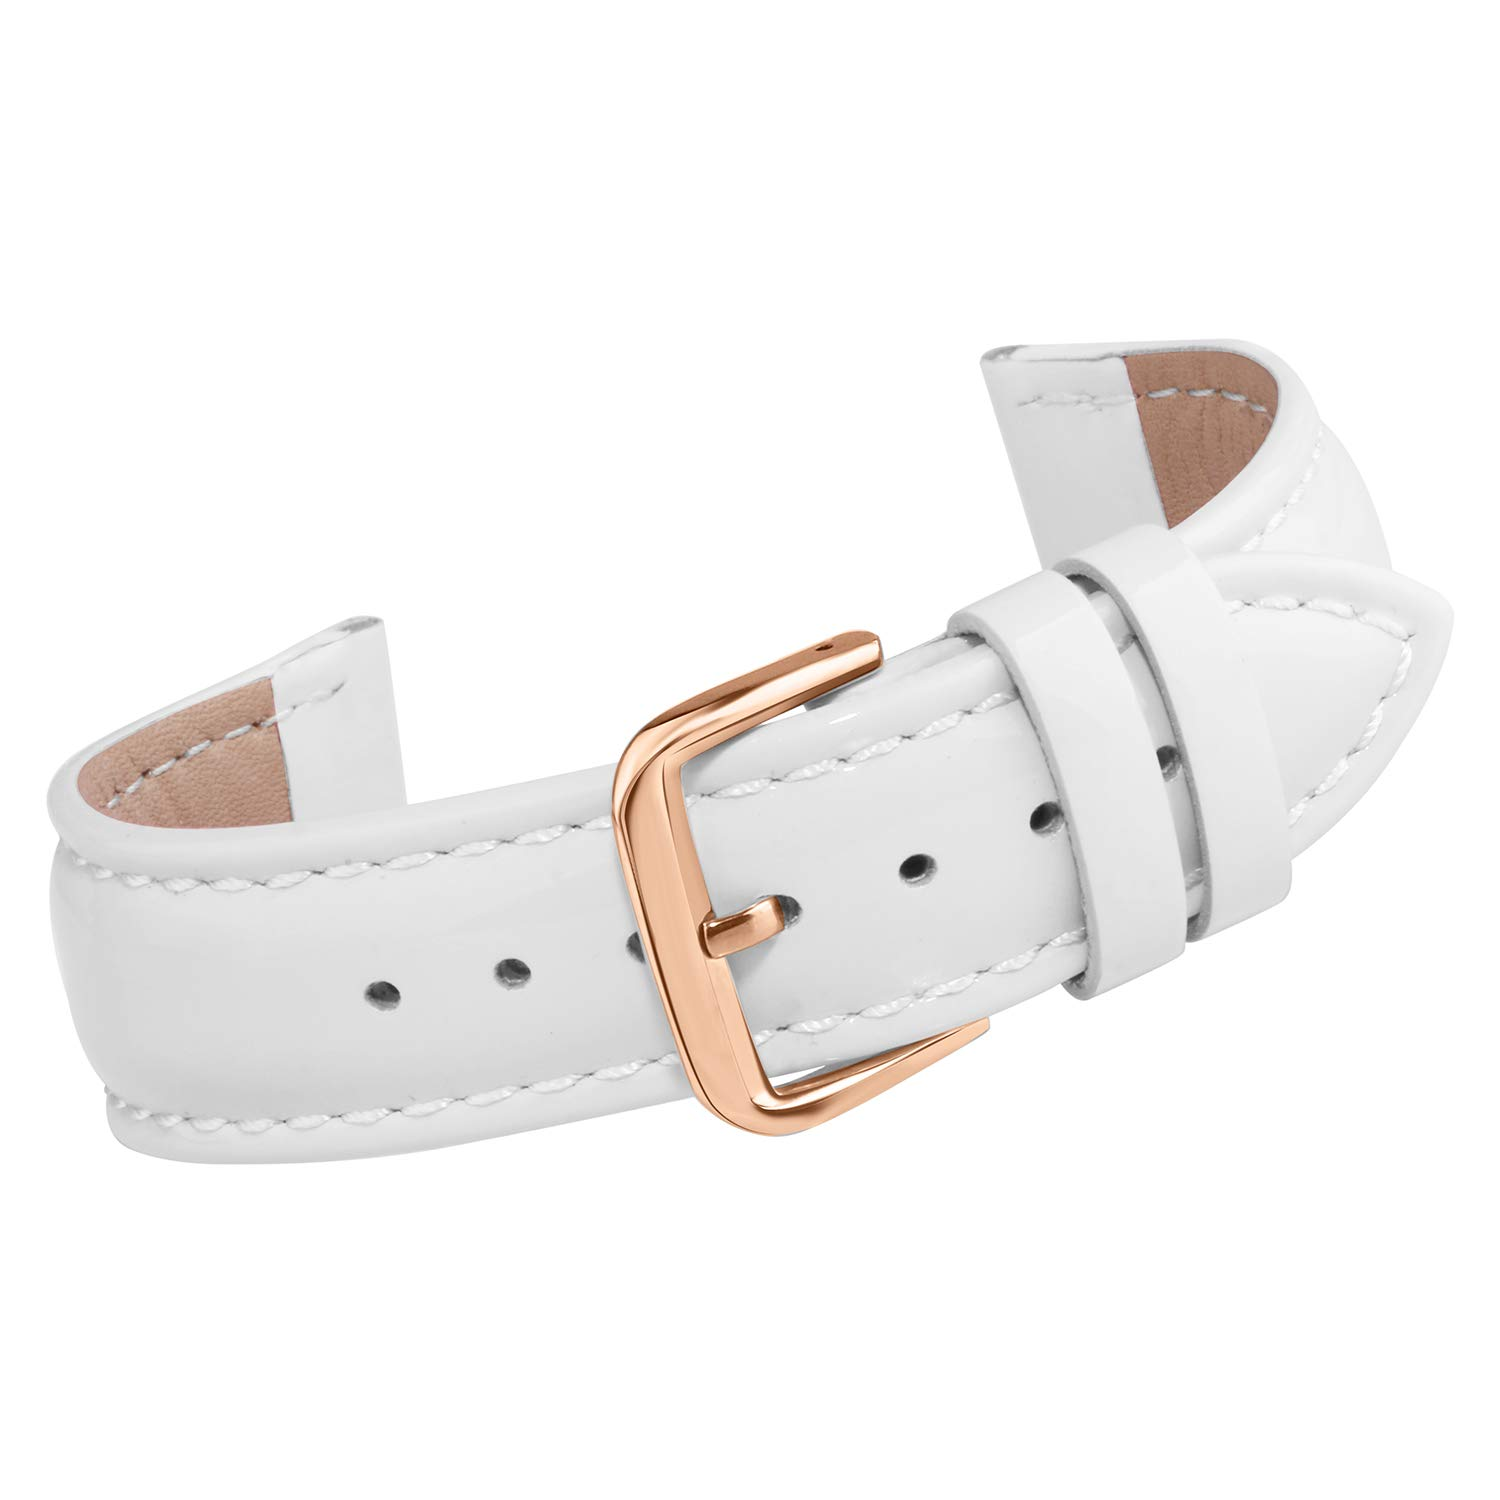 Watch Leather Strap 16mm Leather Watch Band with Rose Gold Buckle by AUTULET